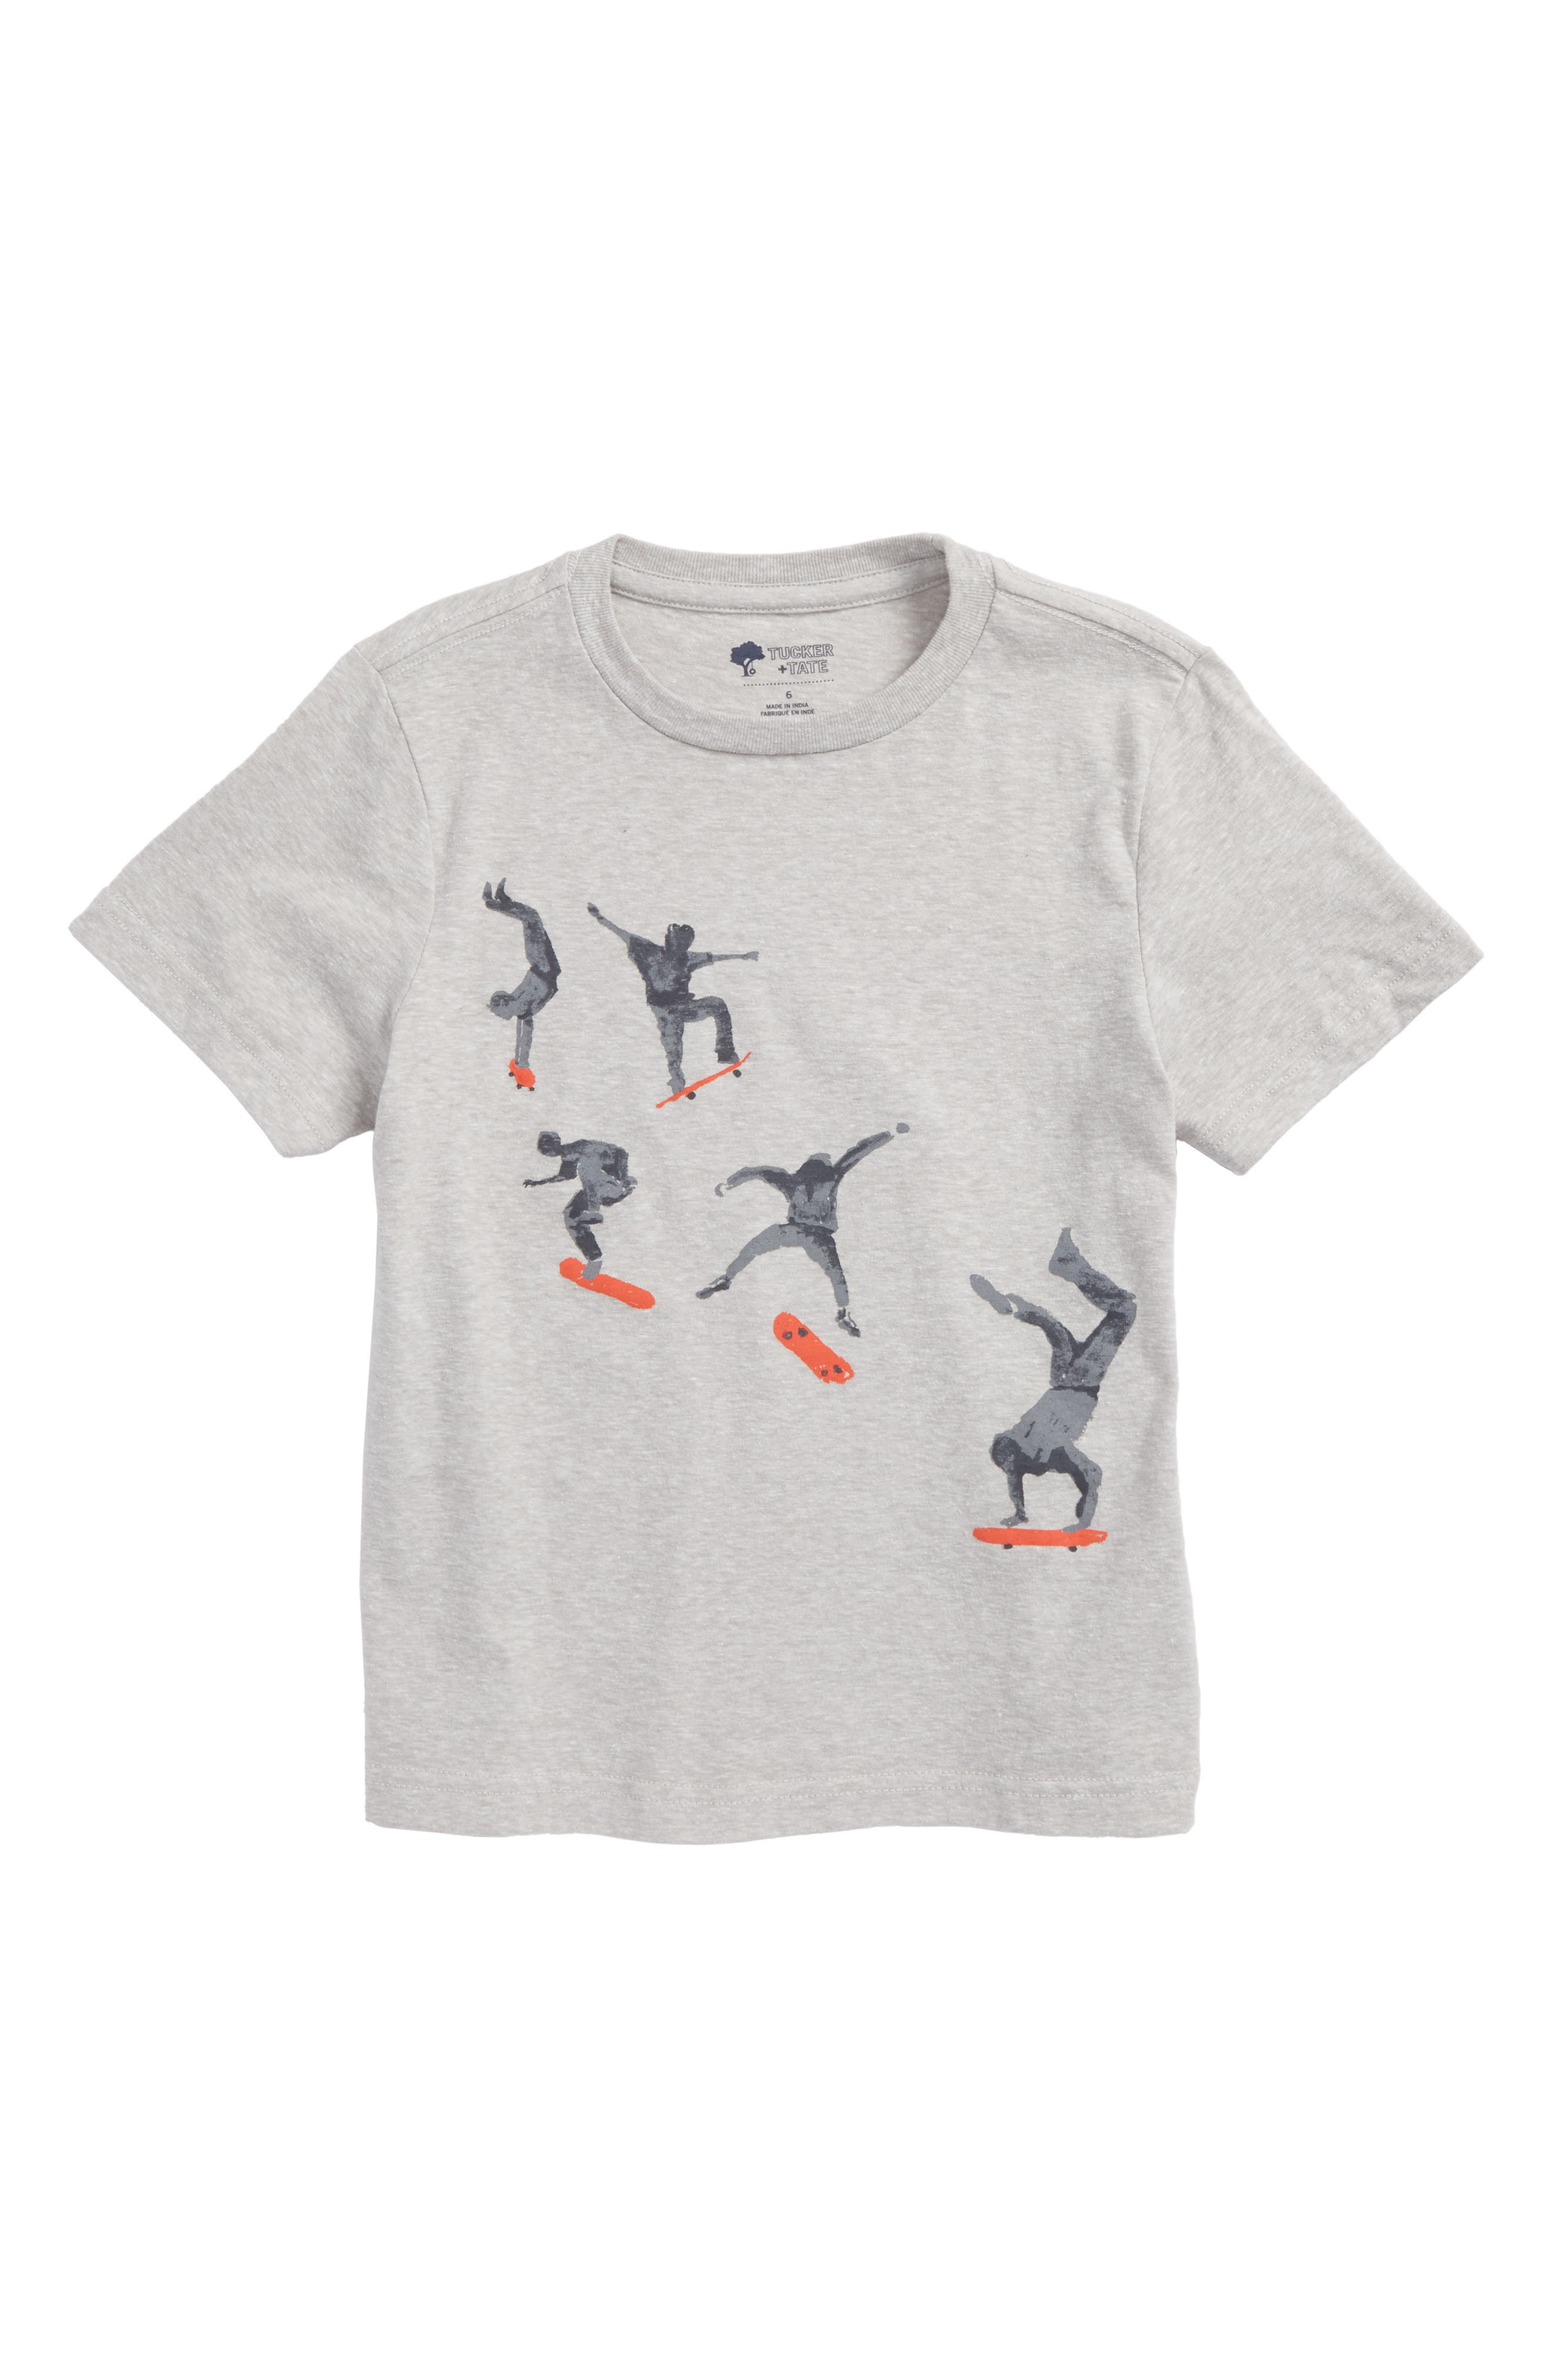 Graphic T-Shirt,                         Main,                         color, Grey Ash Heather Skater